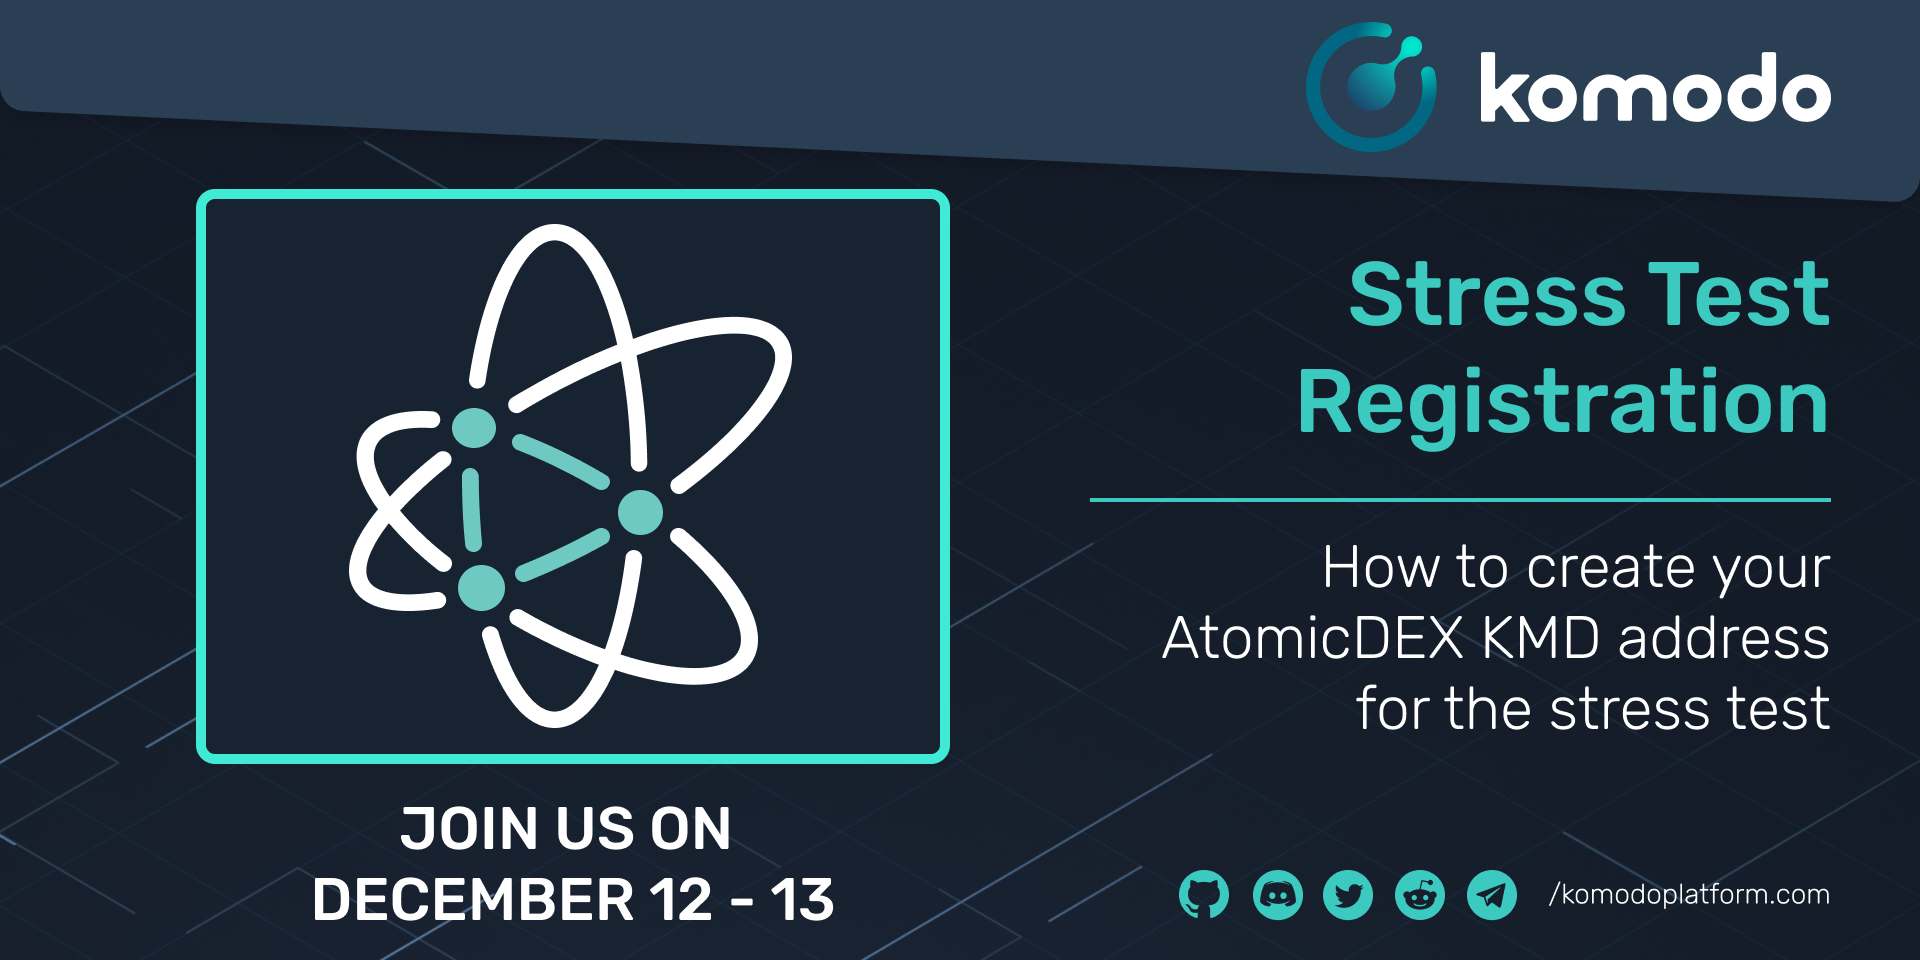 How To Get Your AtomicDEX KMD Address